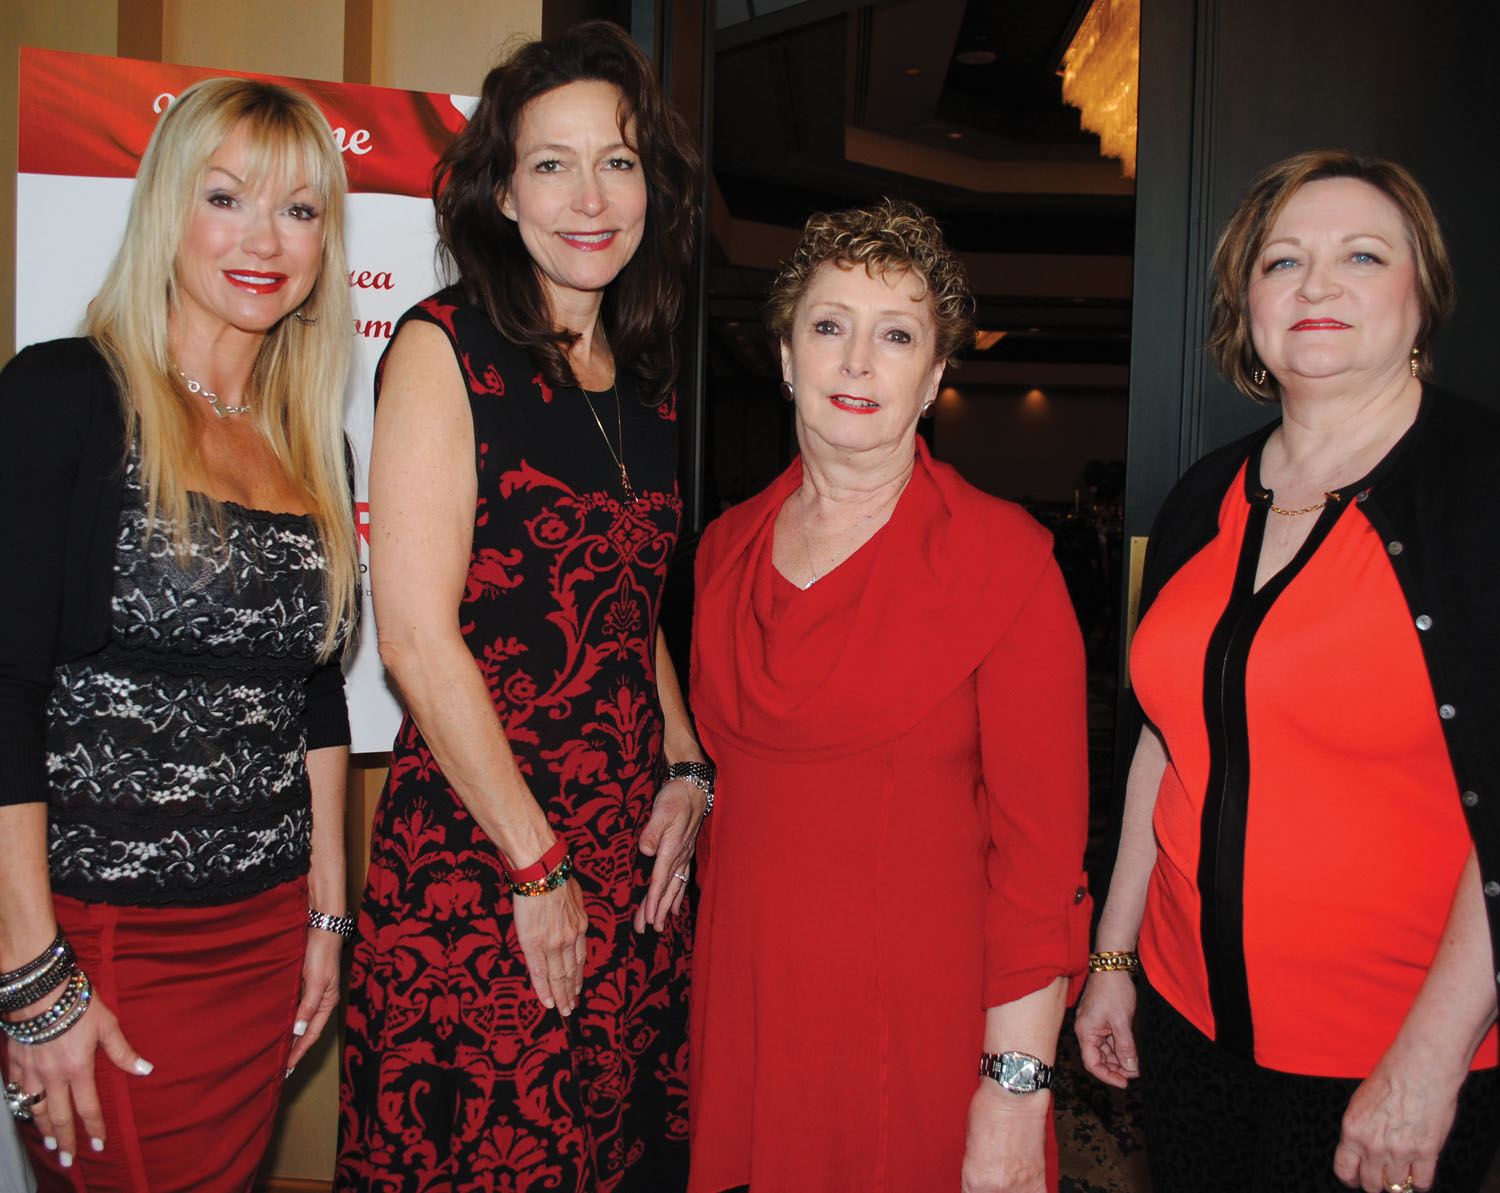 Kimberly Harding, Lauri Gordon, Susan White and Nancy Suarez, from left, were among several who spent many hours making the Go Red for Women event a big success.